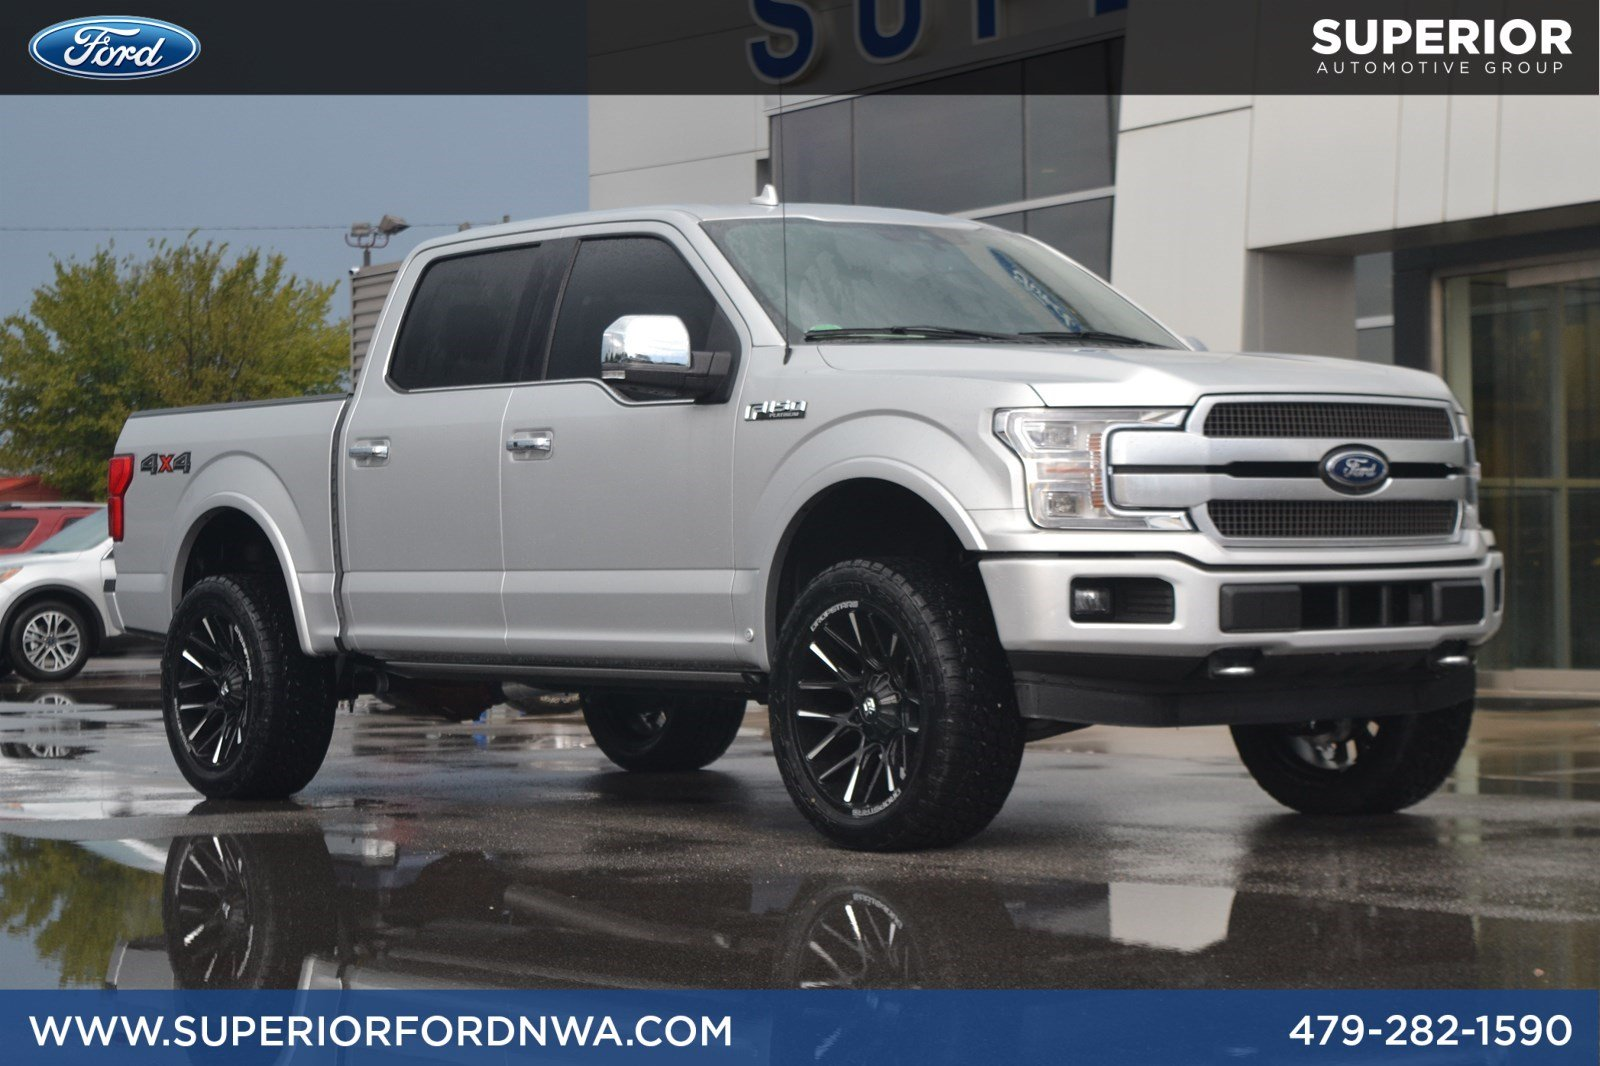 New 2019 Ford F-150 Platinum 4WD Crew Cab